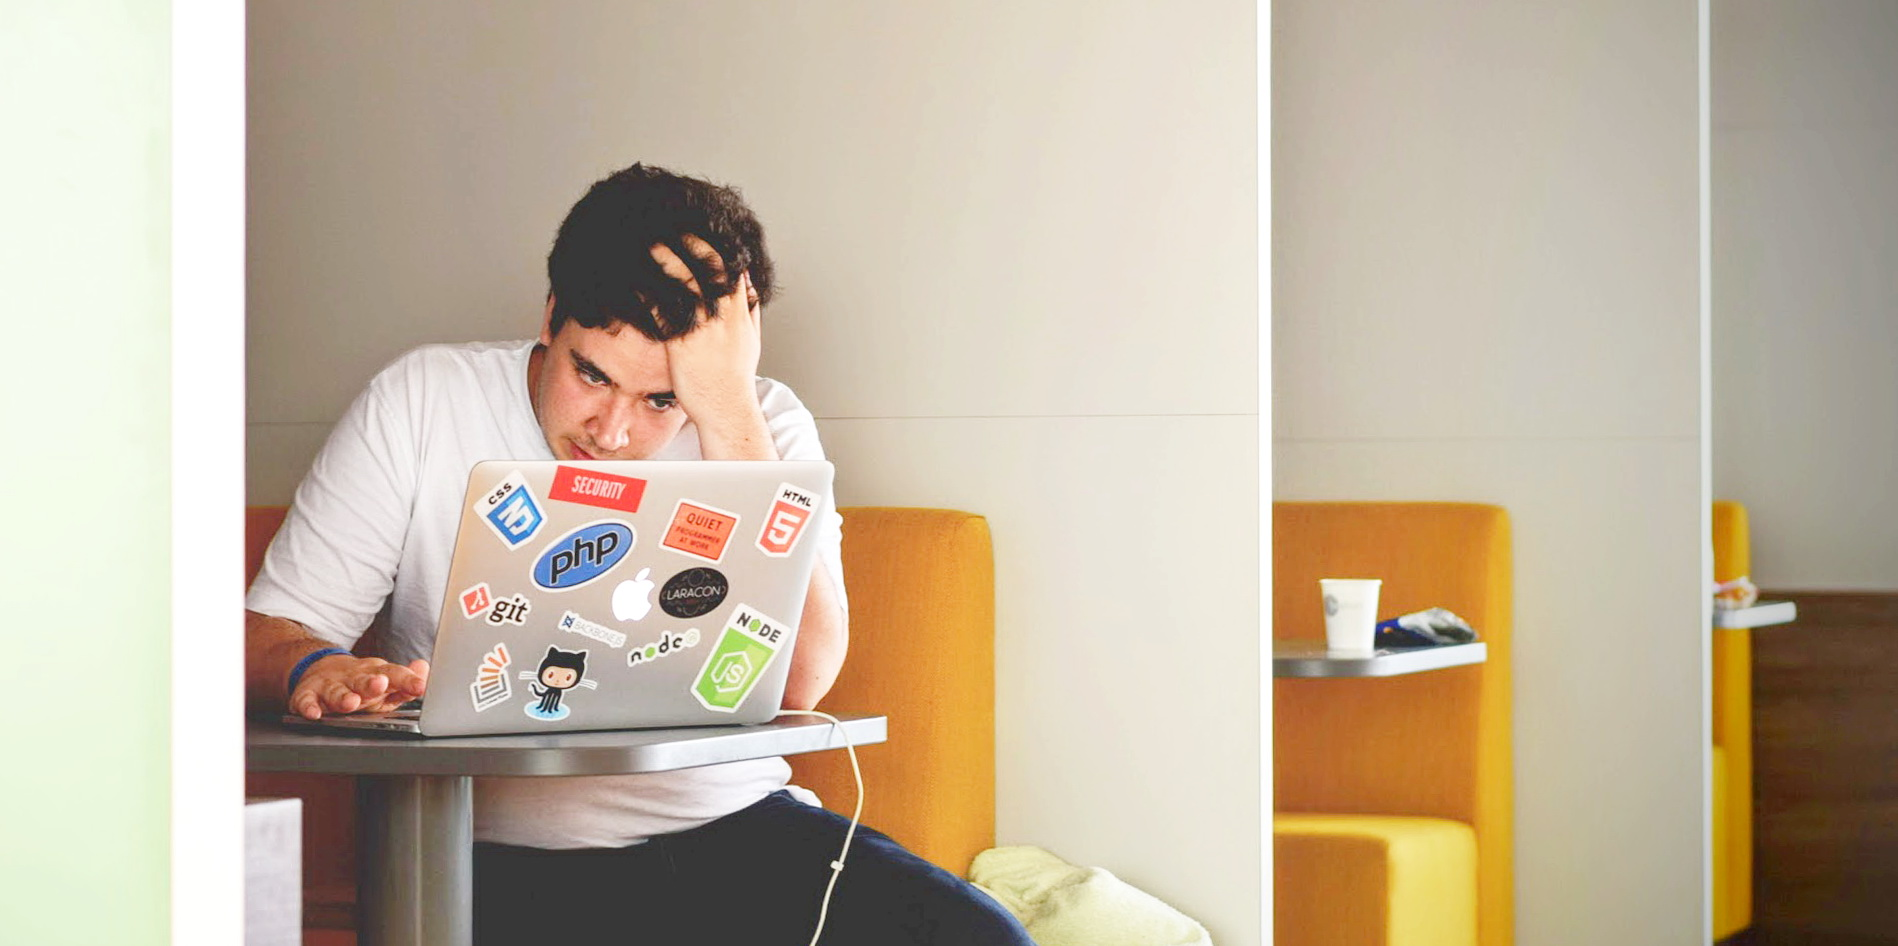 5 Reasons You Are Not Getting Hired